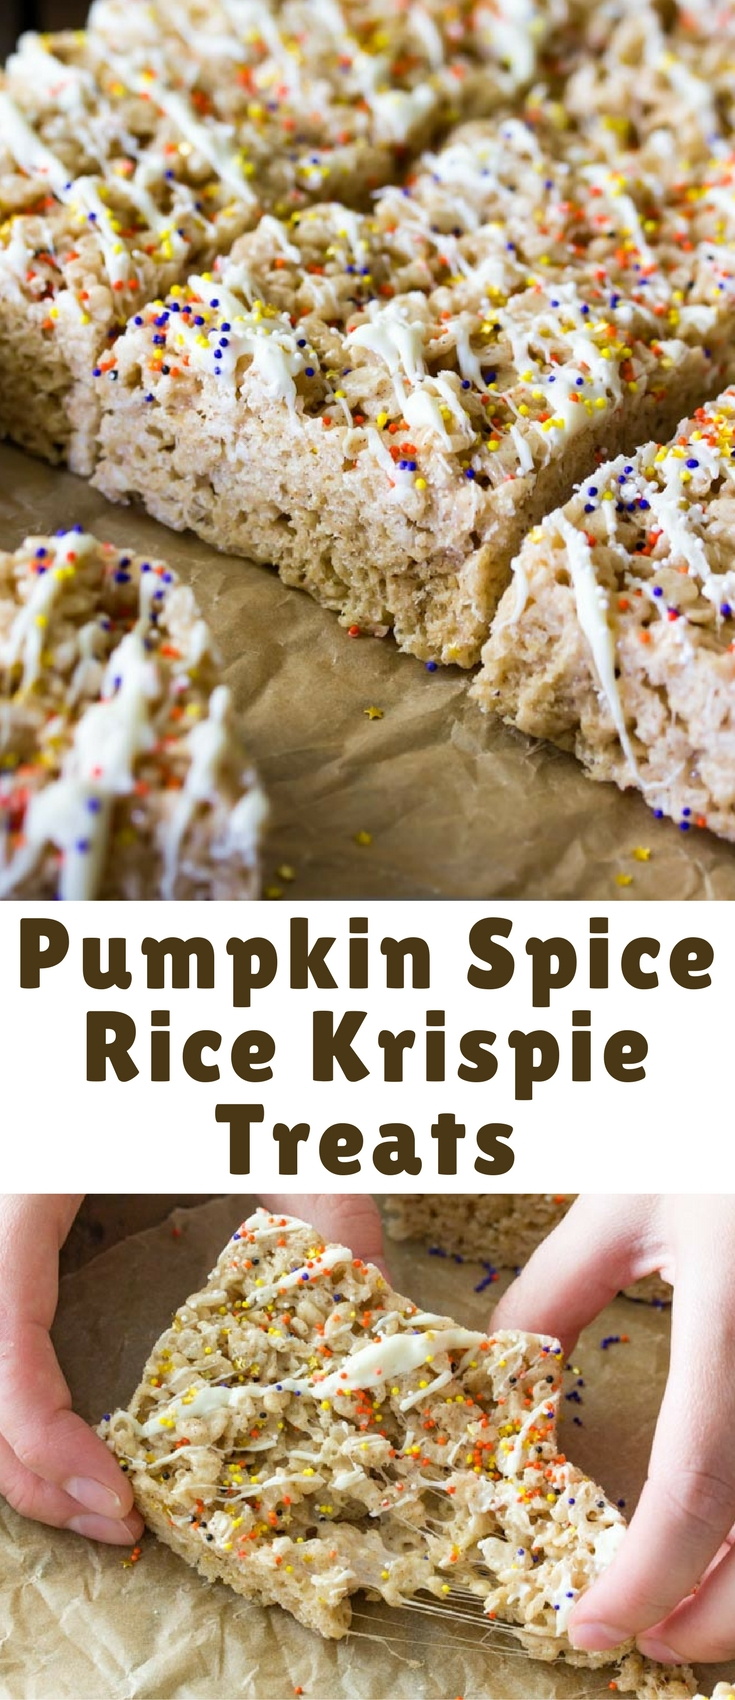 Sweet pumpkin spice rice krispie treats made with the best spices of Fall, flavorful browned butter, and drizzled with white chocolate. Don't forget to top everything off with sprinkles!